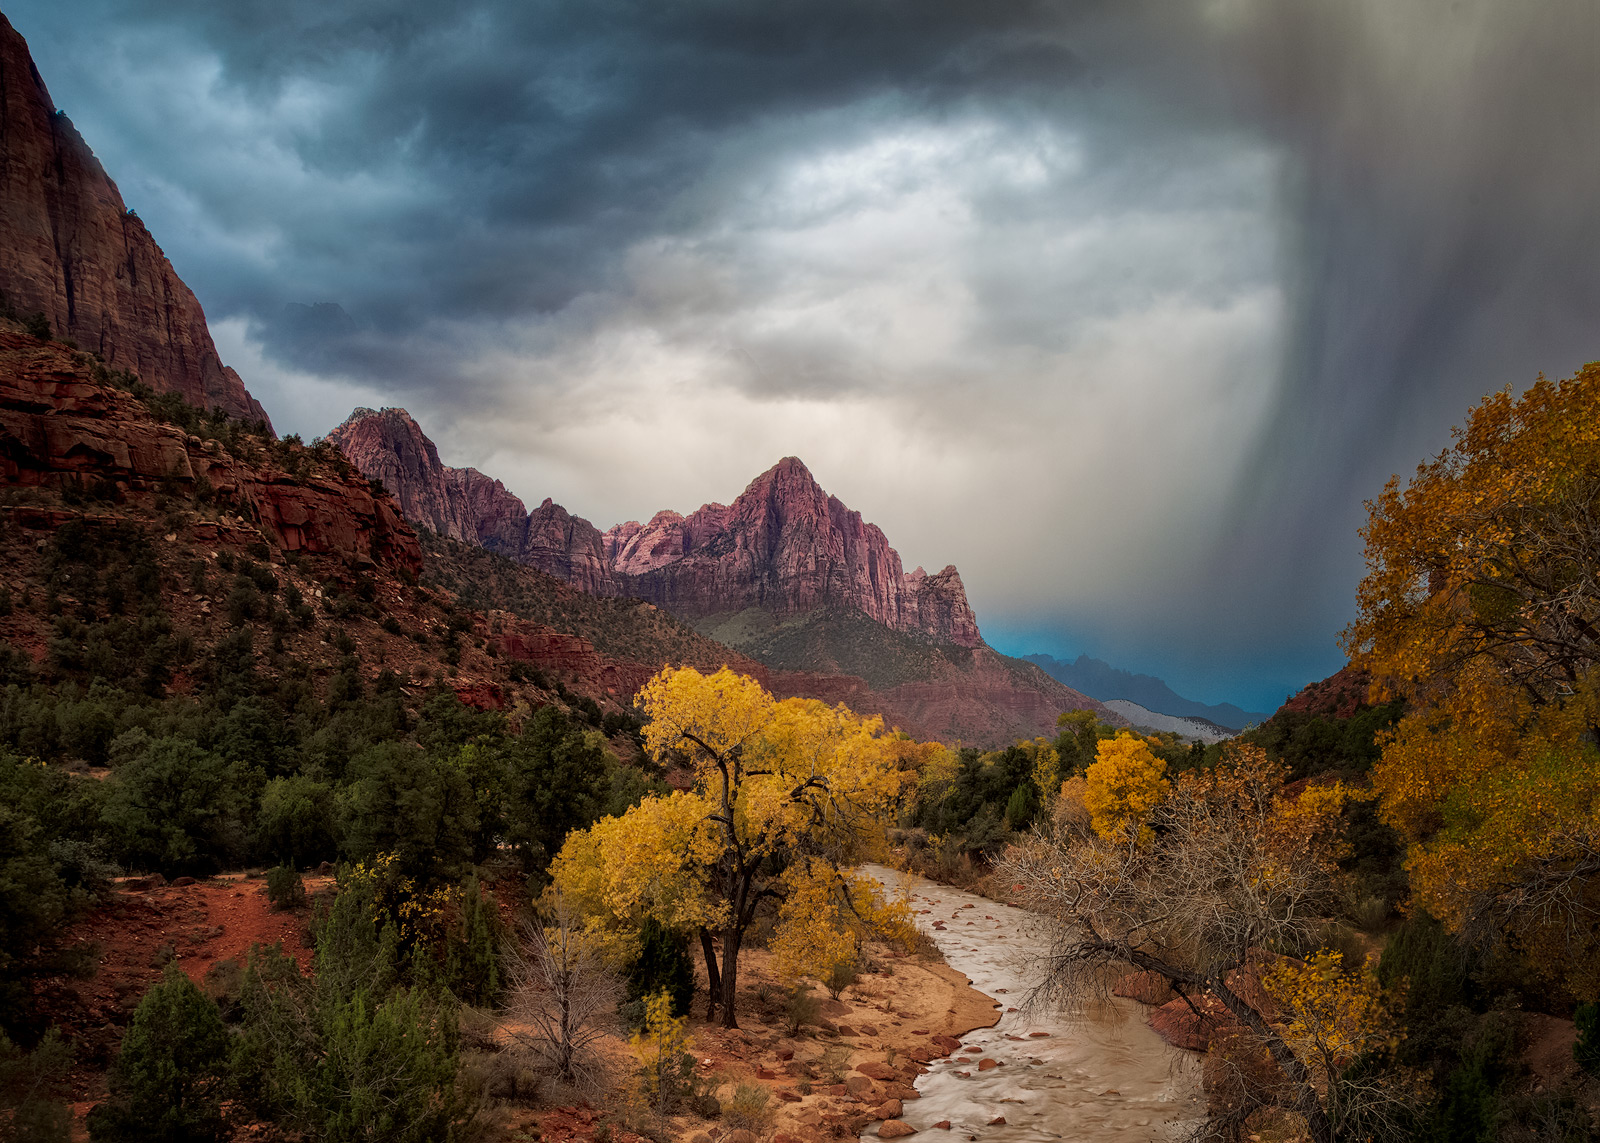 cloudy,cottonwood,fall,landscape,morning,mountain,north america,peak,river,southwest,sunrise,tree,united states,utah,watchman,water body,zion national park, photo